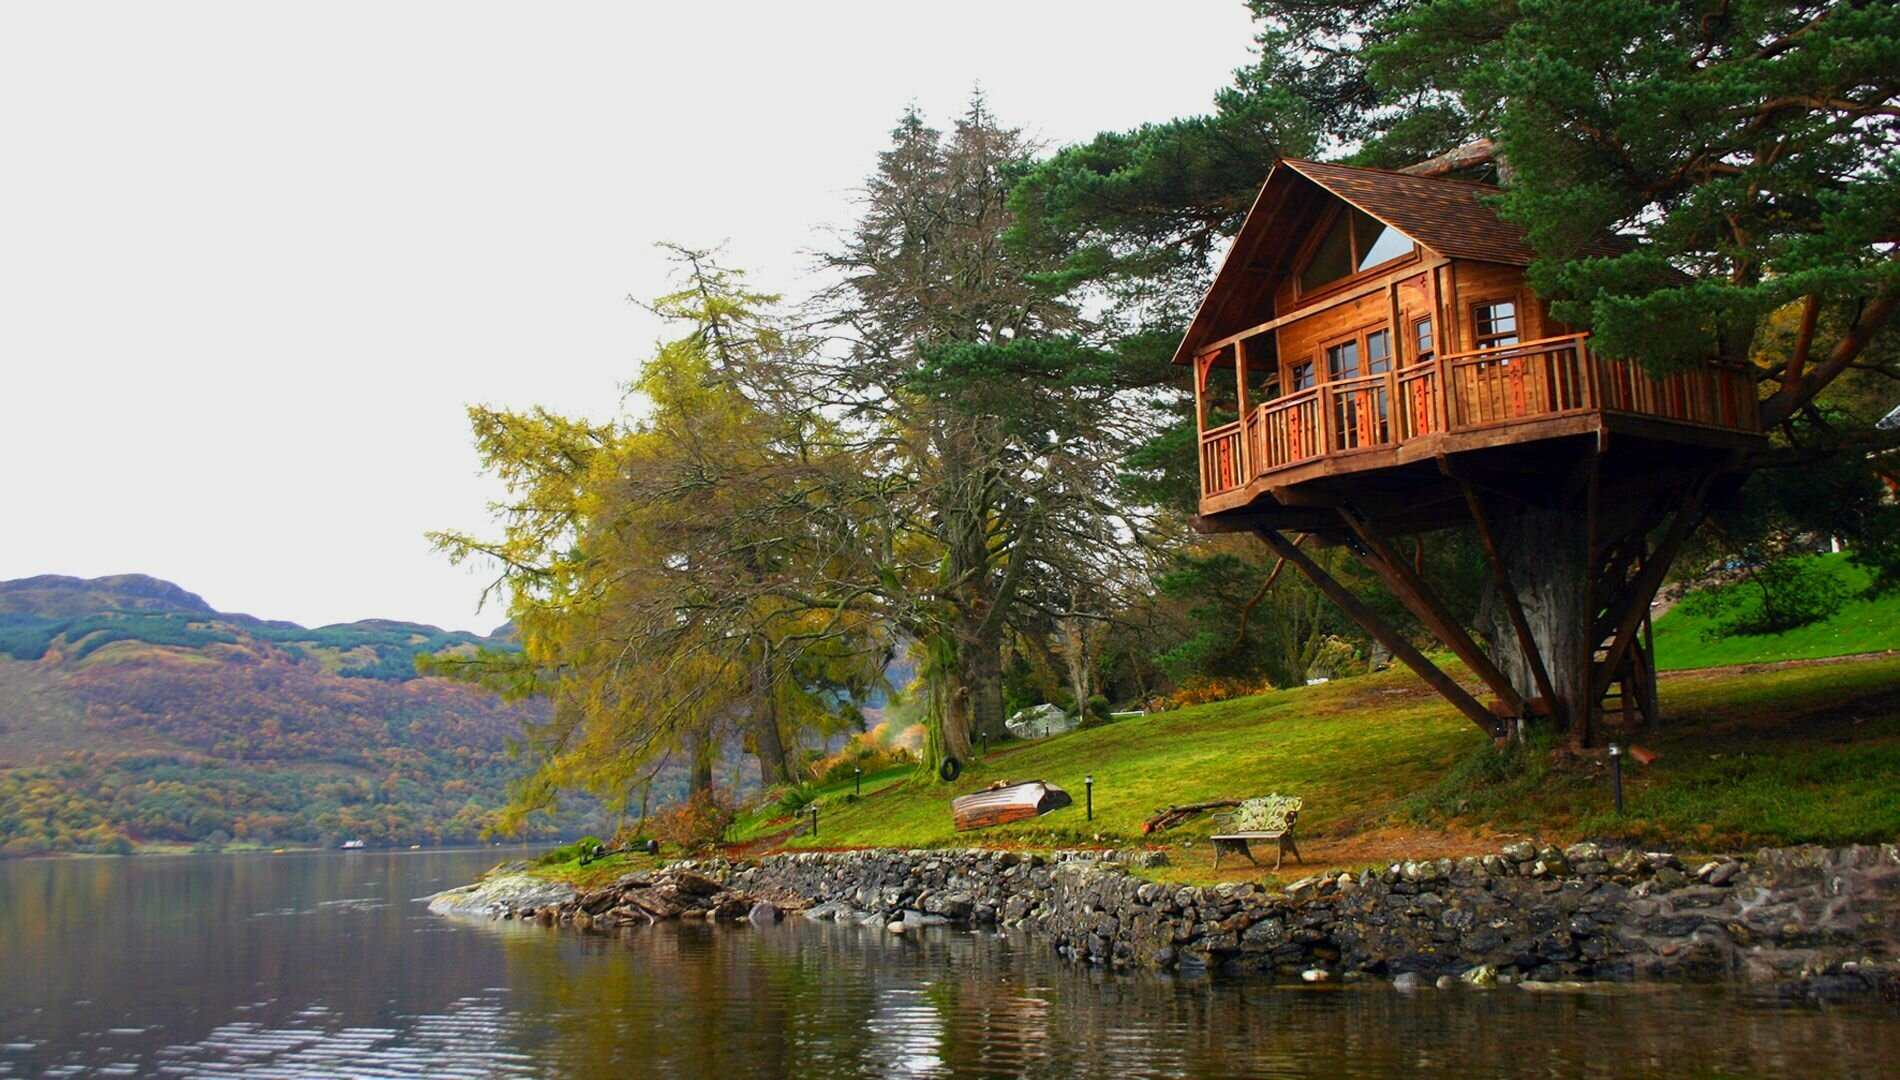 18 amazing tree house designs mostbeautifulthings for Incredible home designs